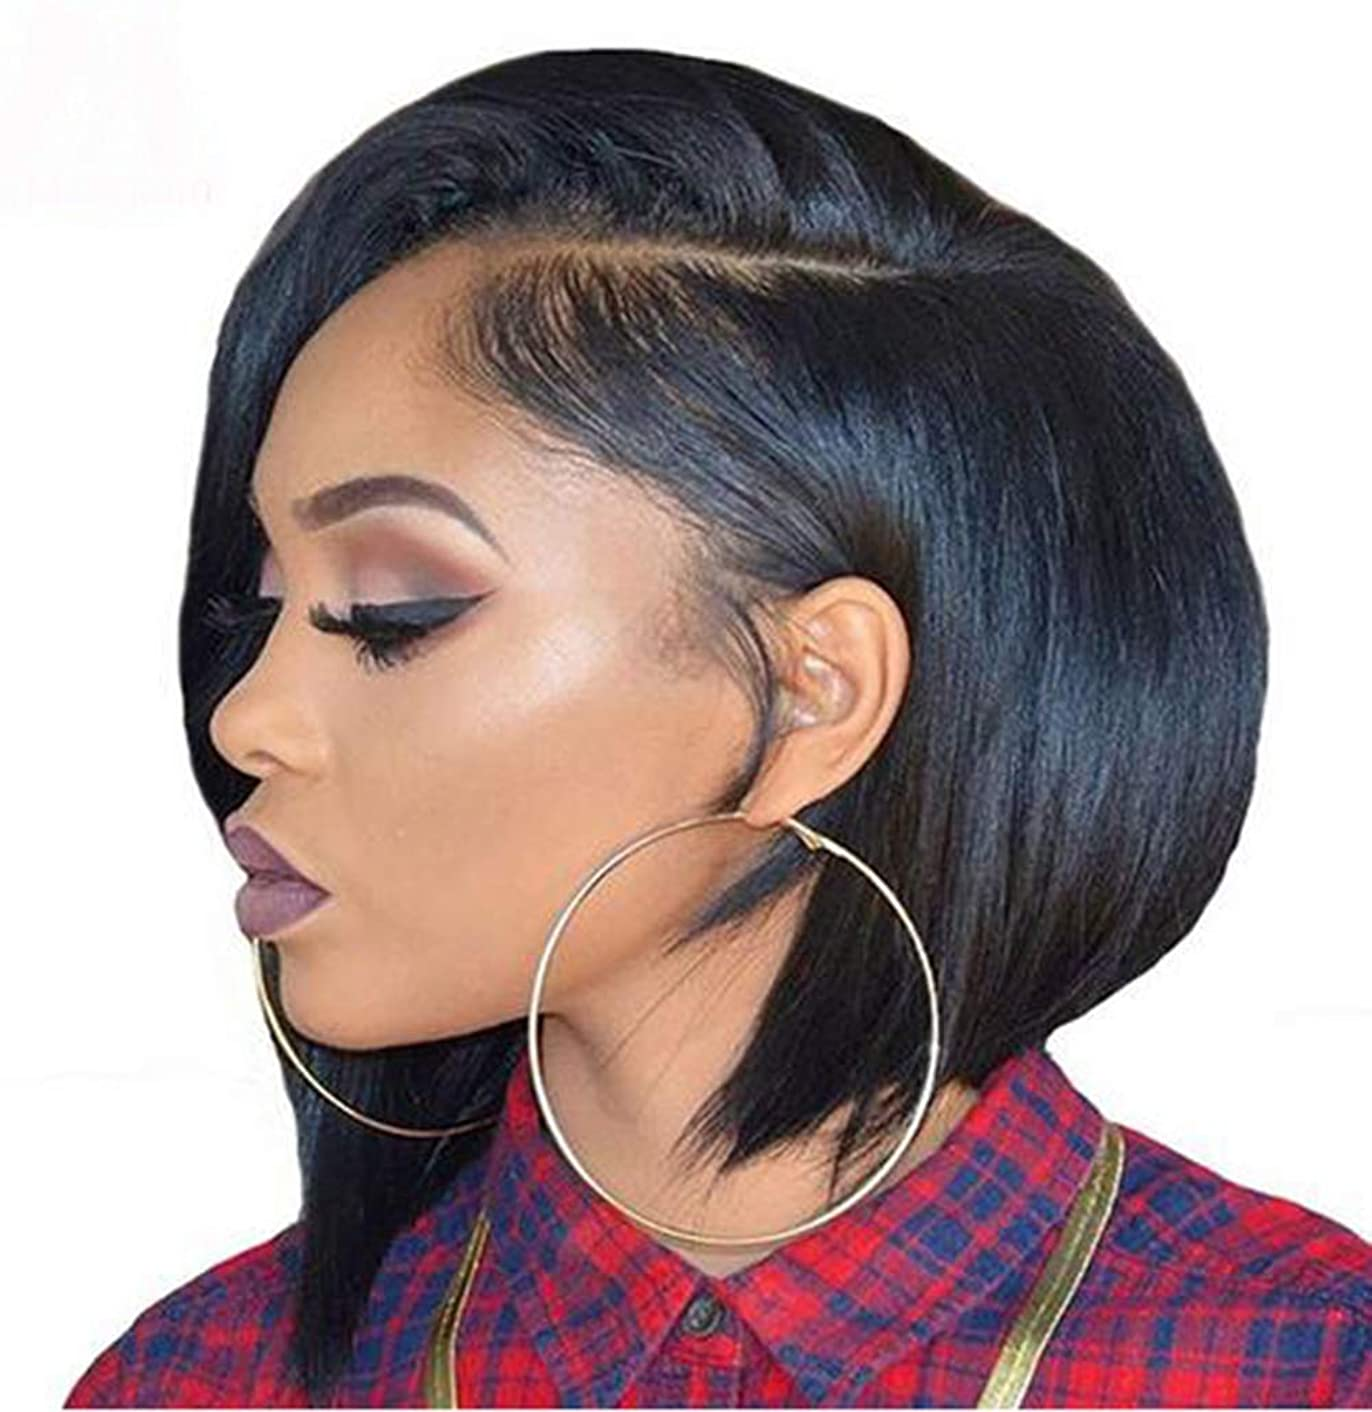 Glueless Virgin Human Hair Wigs 130% Density Short Bob Side Part Wigs Lace Front Brazilian Human Hair Wigs 8inch